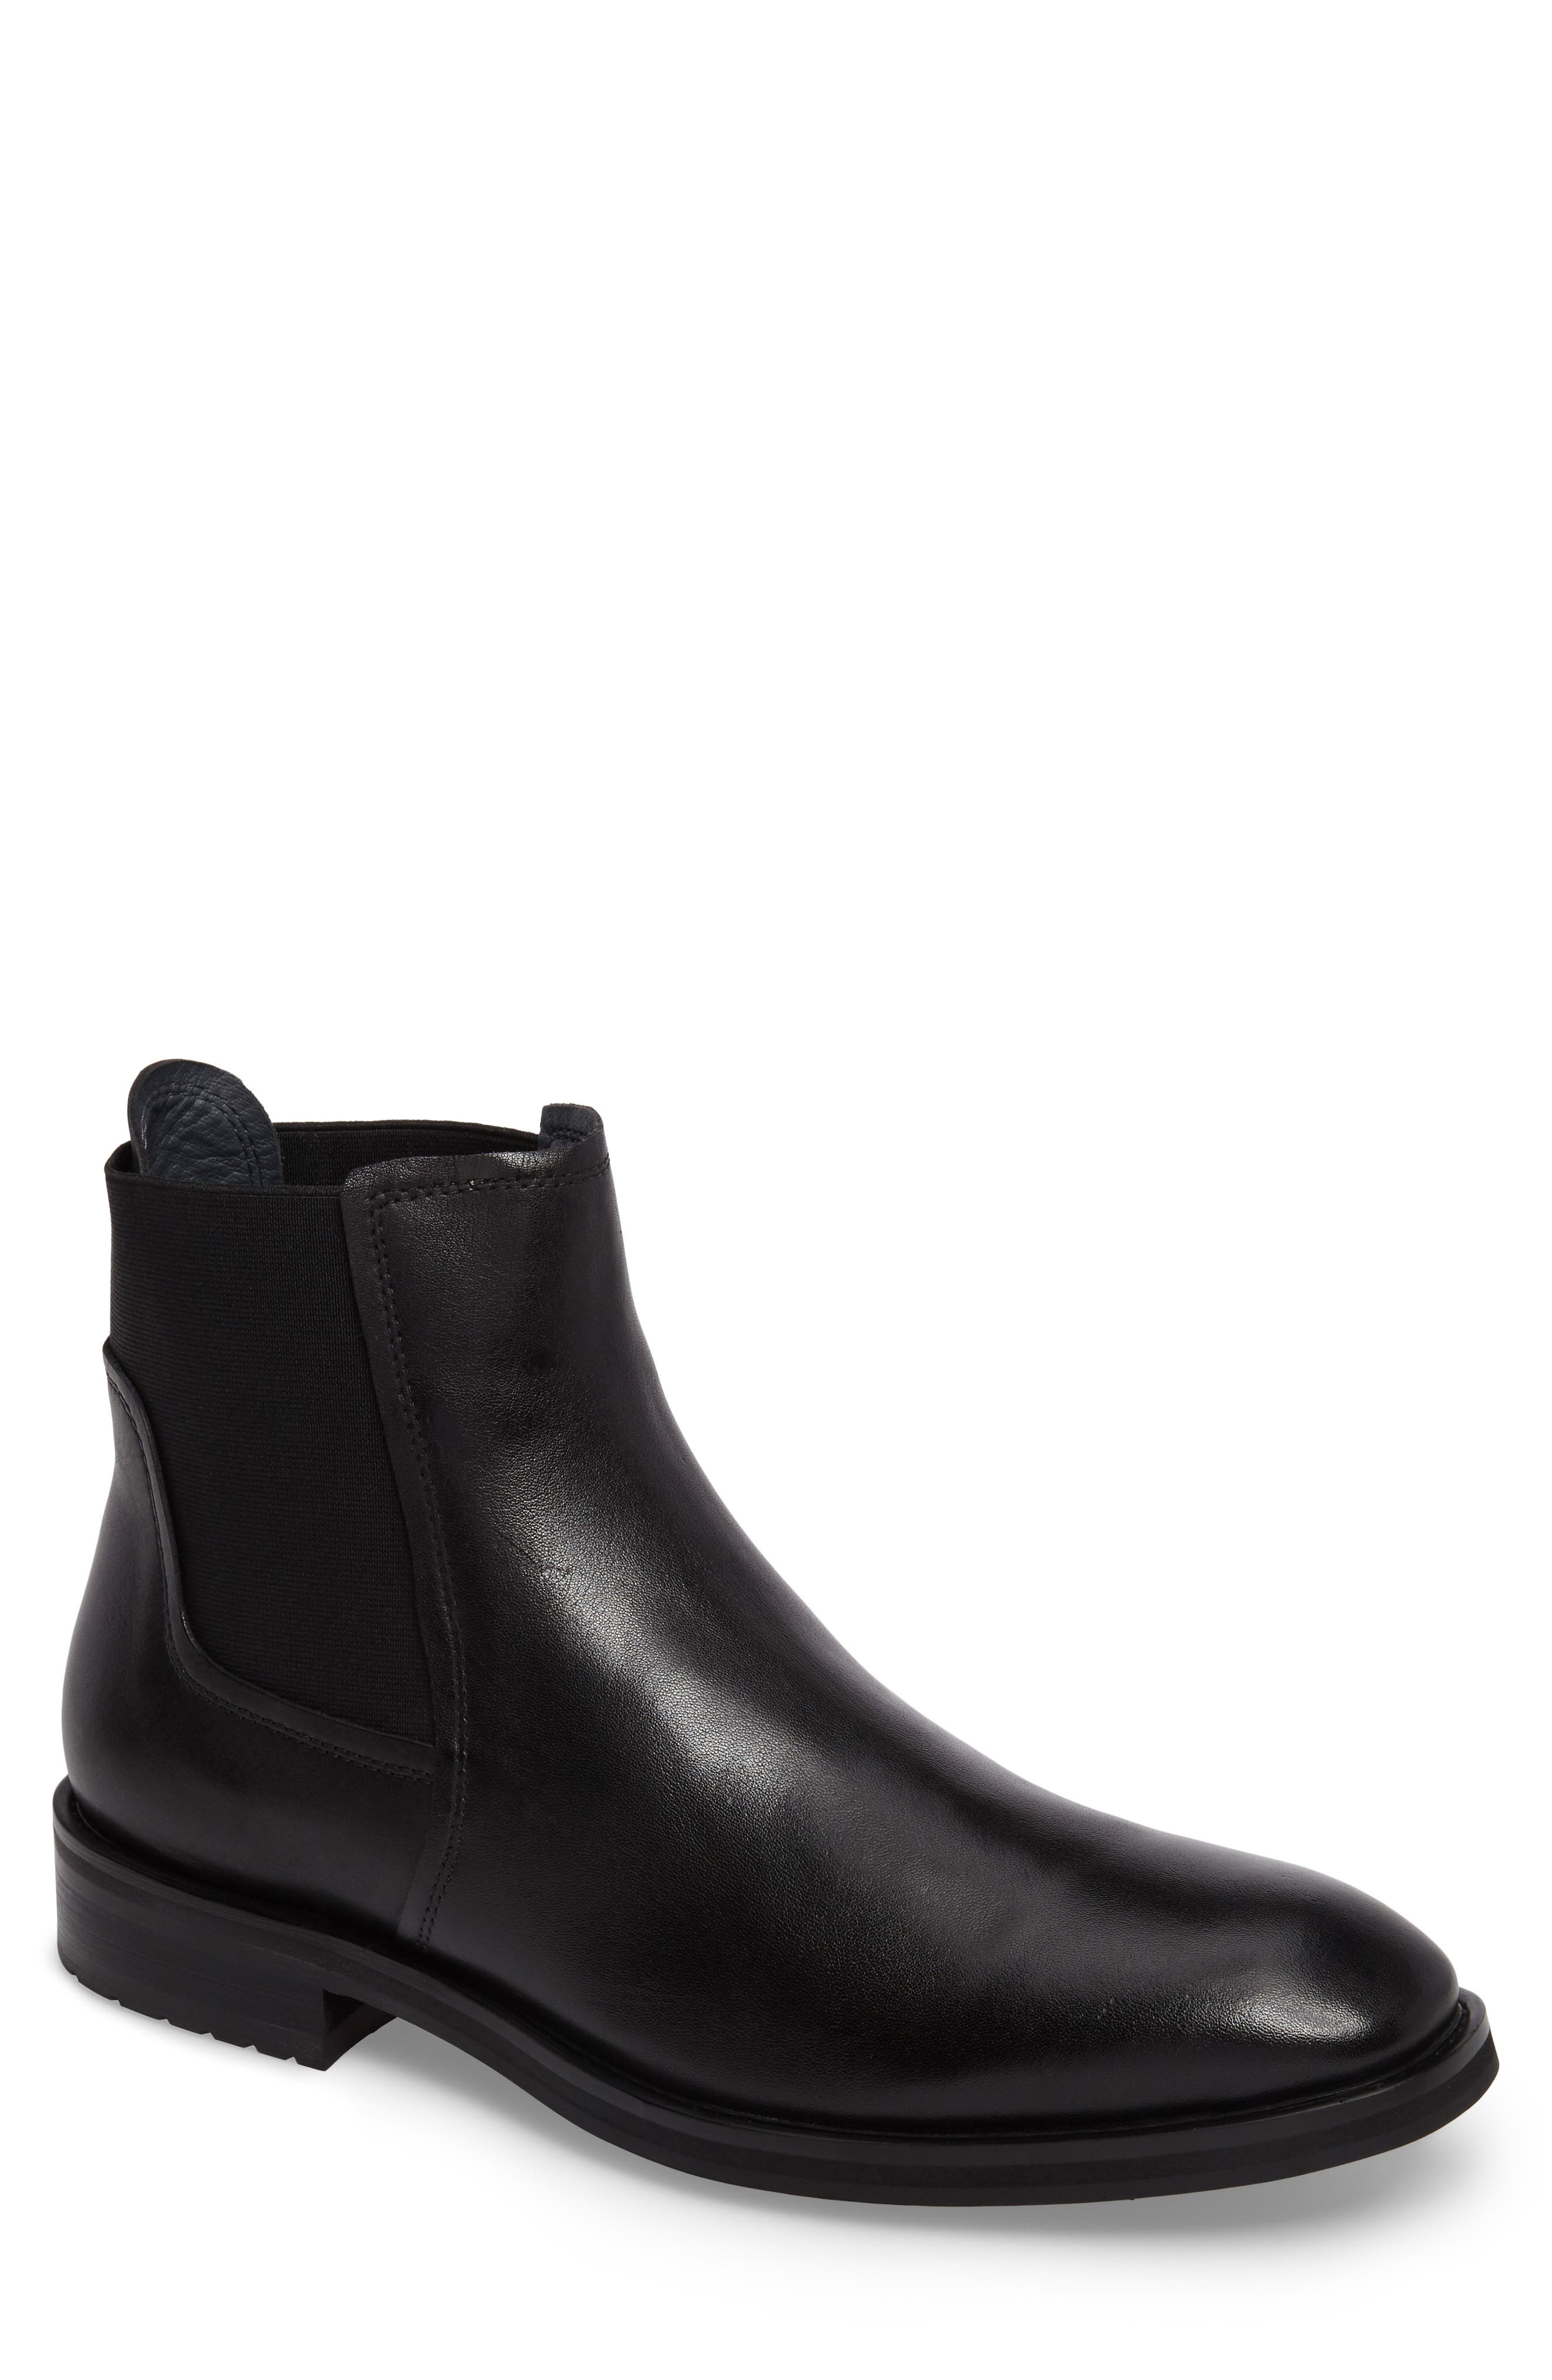 Belmont Chelsea Boot,                         Main,                         color, Black Leather